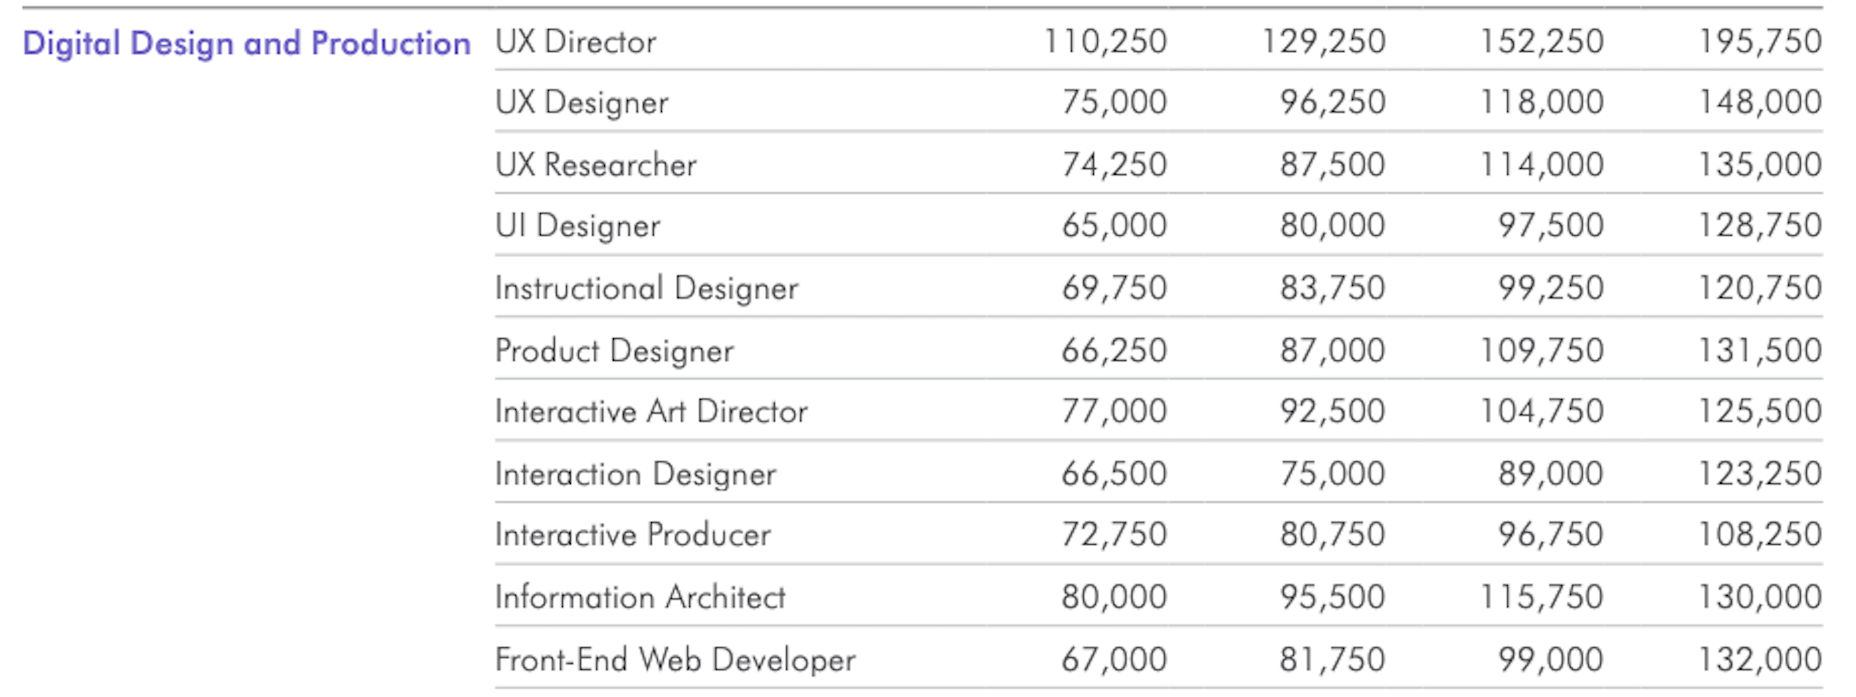 The average salaries for specialty web designers in the U.S., according to Salary Guide